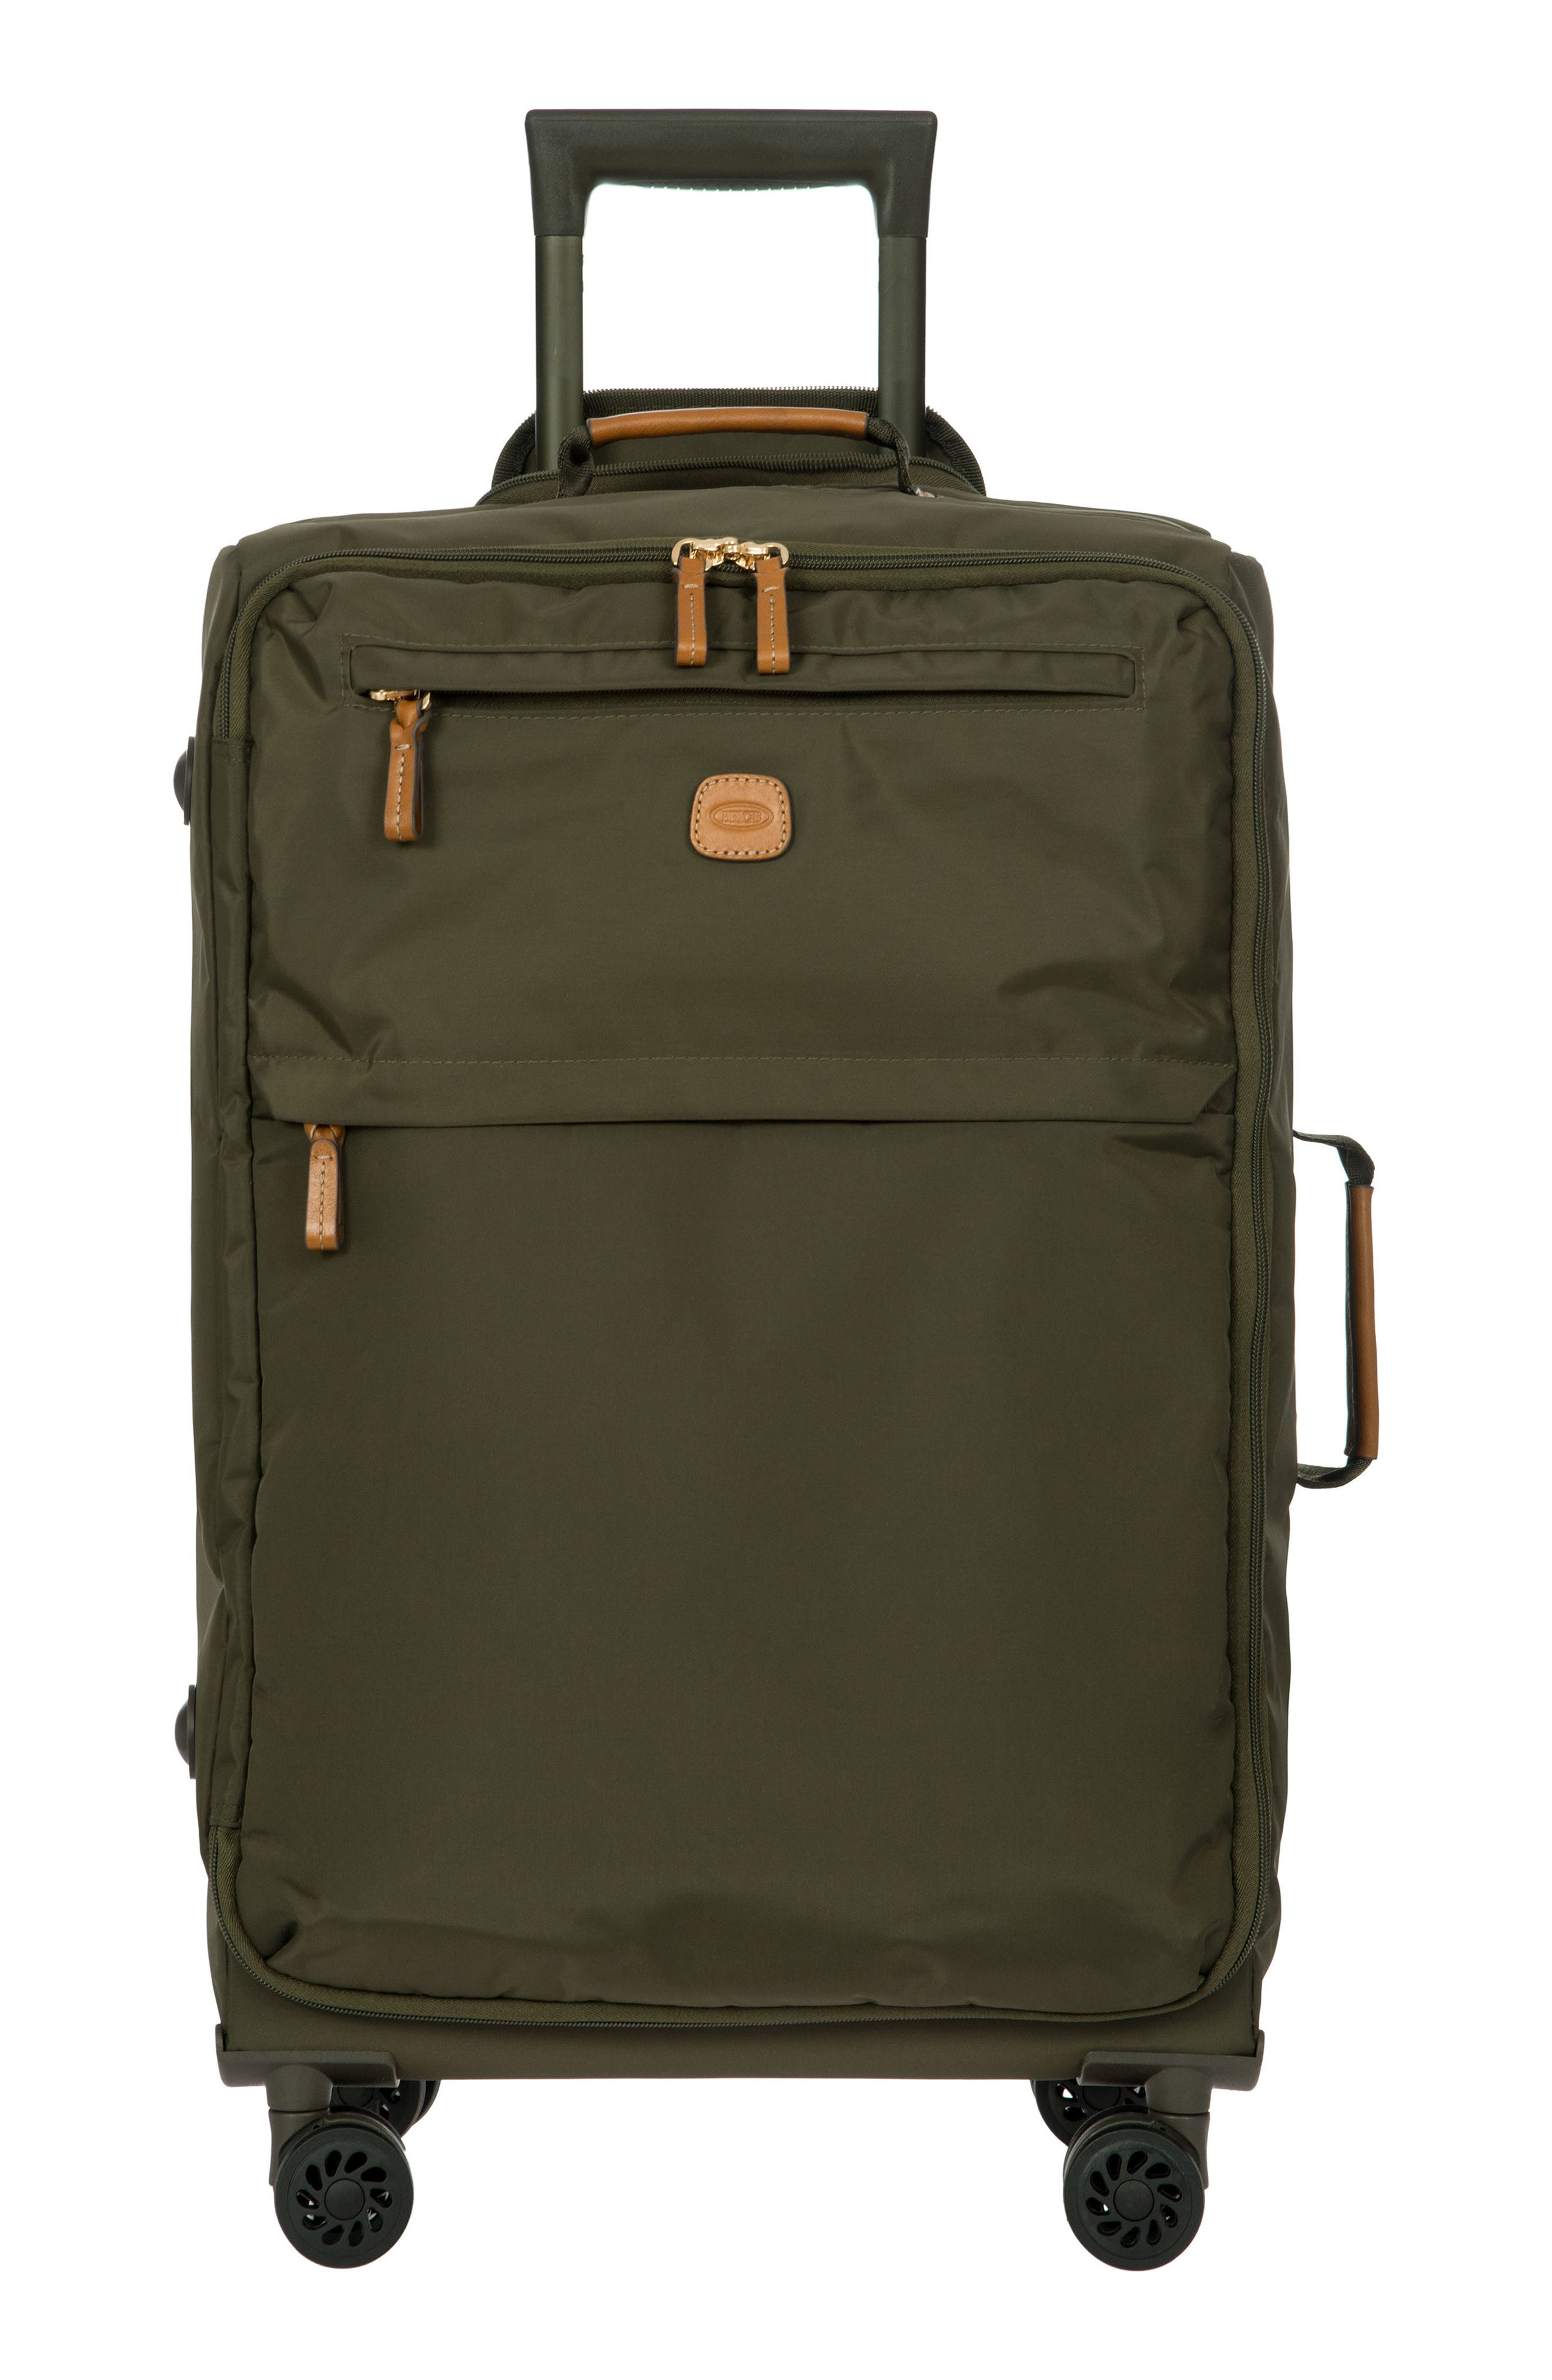 X-Bag 30-Inch Spinner Suitcase - Green in Olive